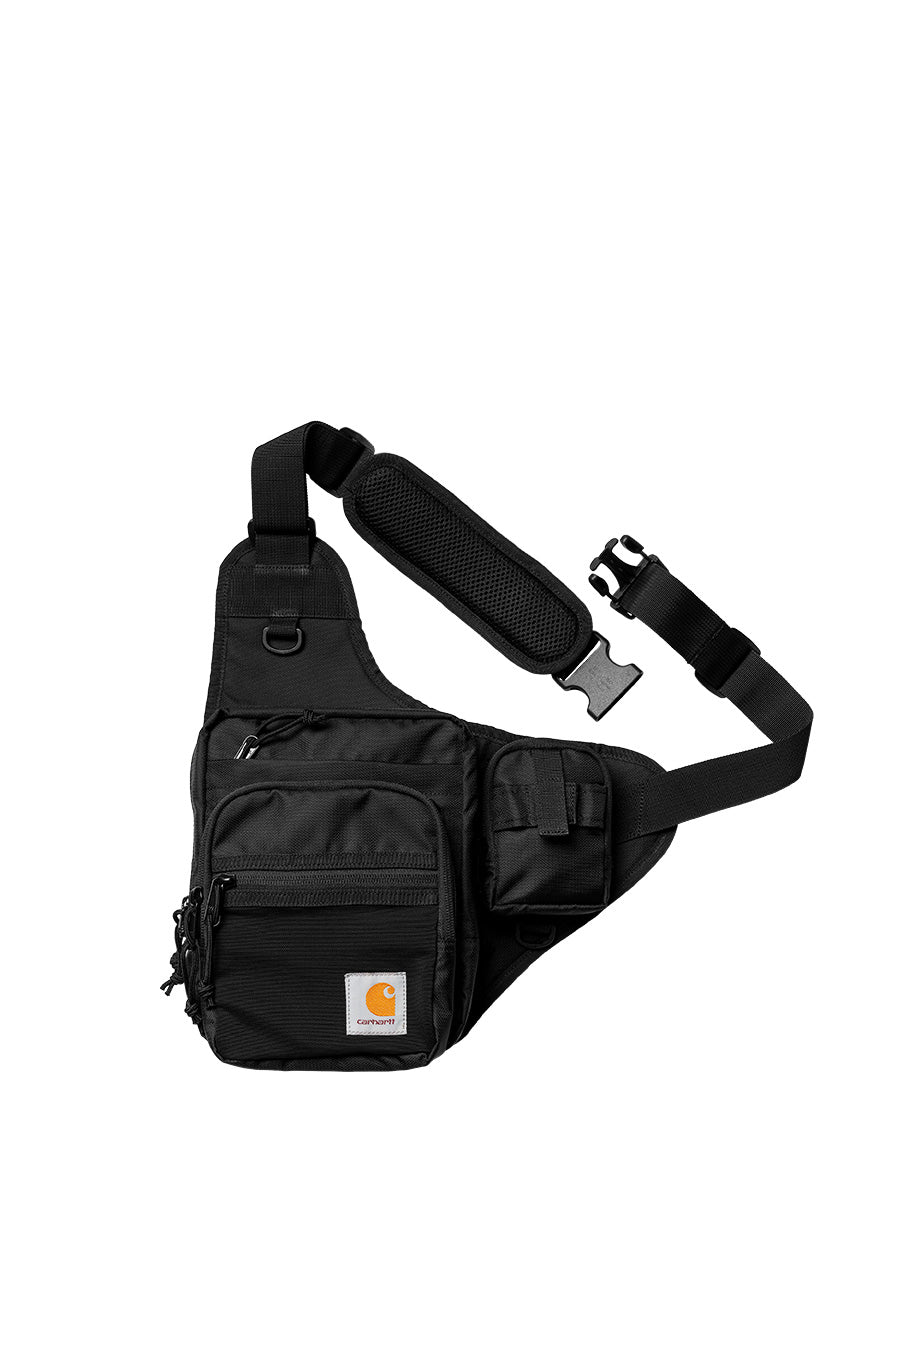 Carhartt WIP - Black Delta Shoulder Bag | 1032 SPACE